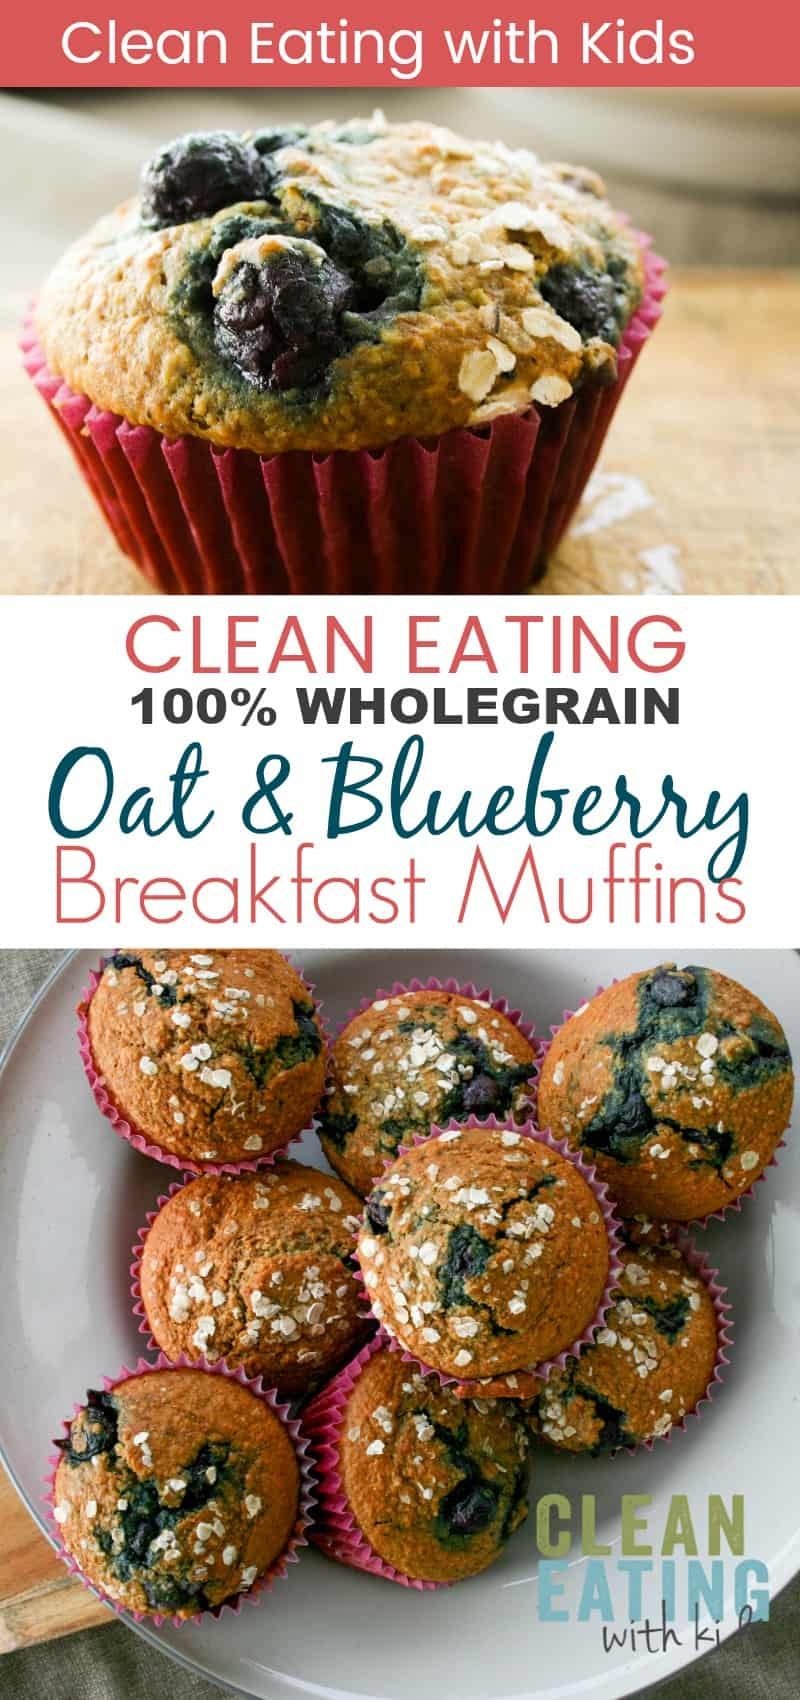 Clean Eating Breakfast Recipe. 100% Whole grain oat and blueberry muffins.